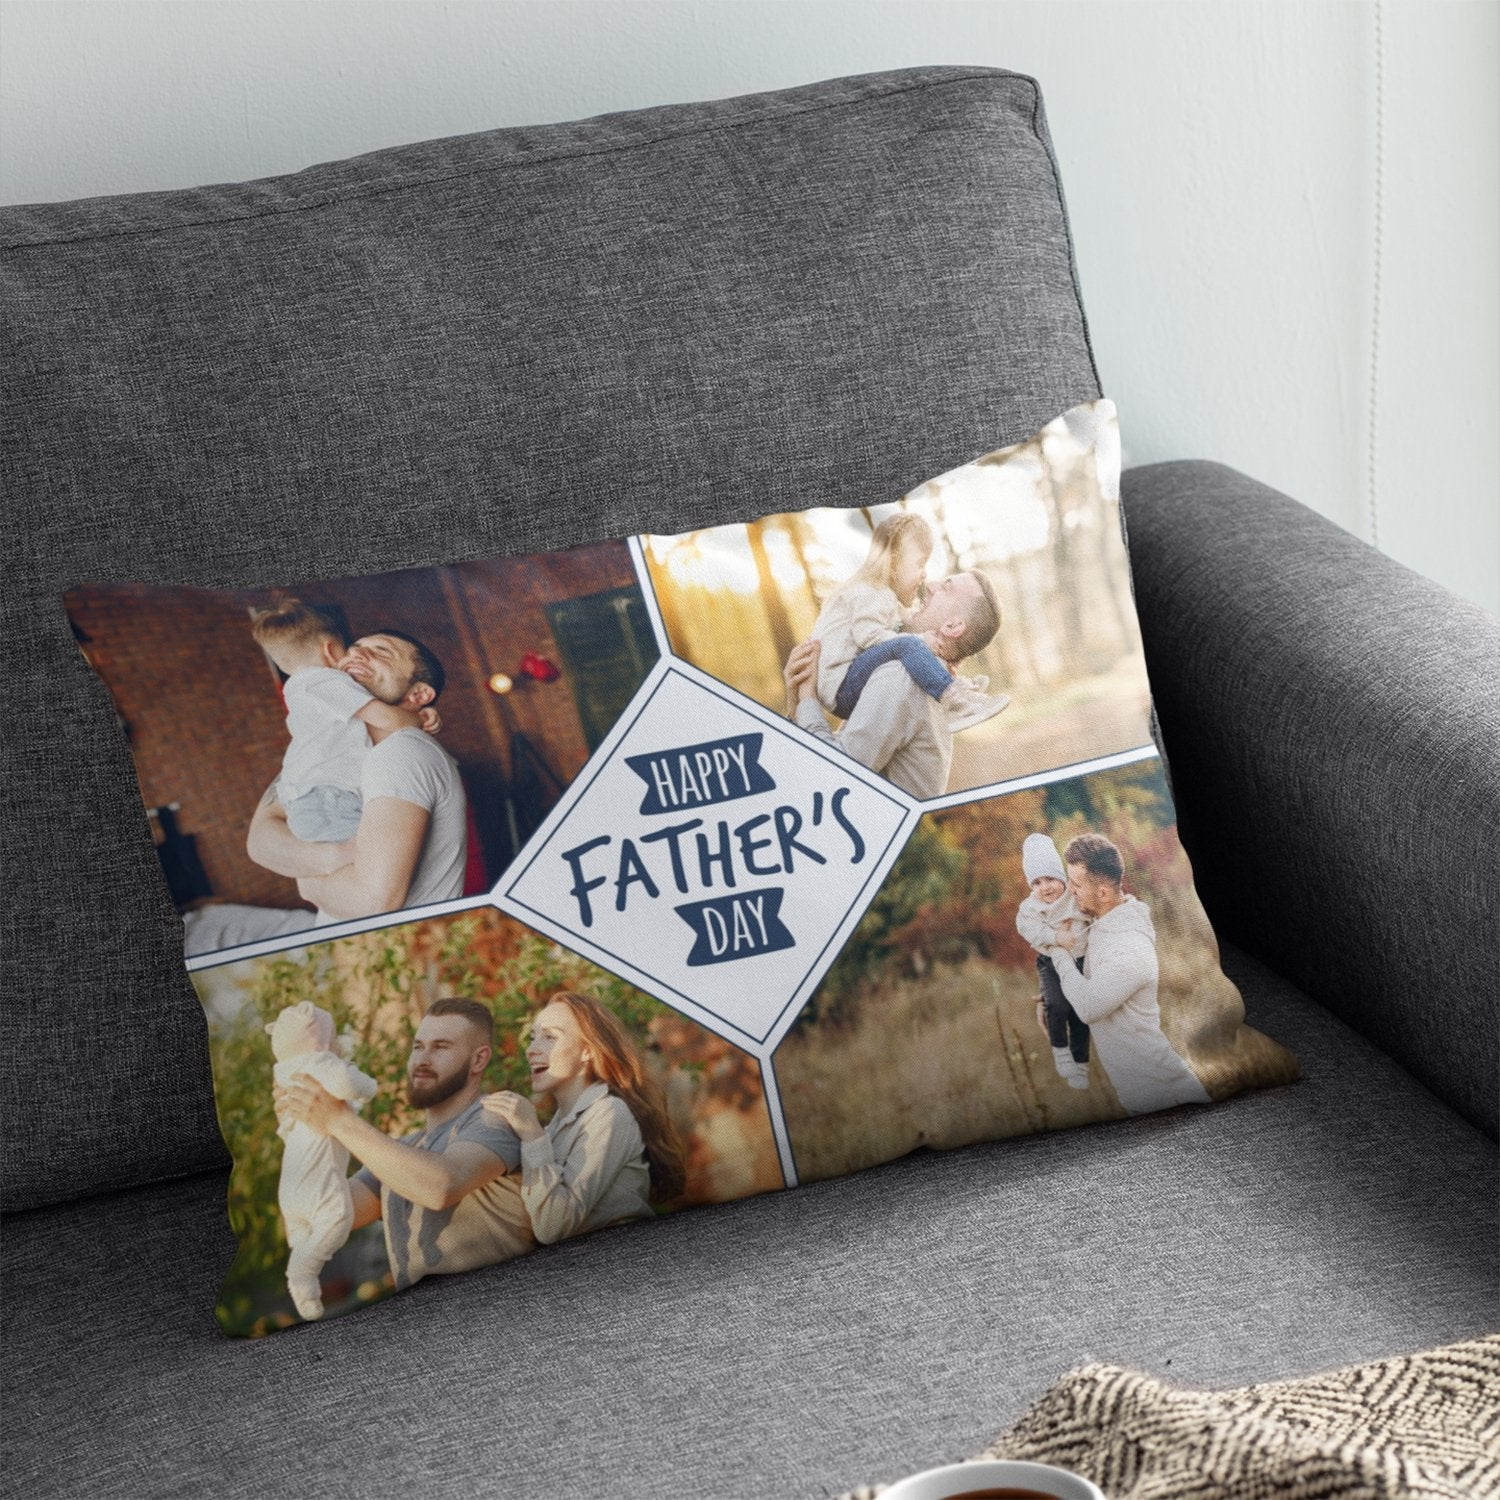 The feeling when you can finally lie down on the couch and take a quick nap is incomparable. Let's make it better with a custom photo pillow featuring beautiful pictures of your choice. Surely it'll make your husband's leisure time more comfortable.